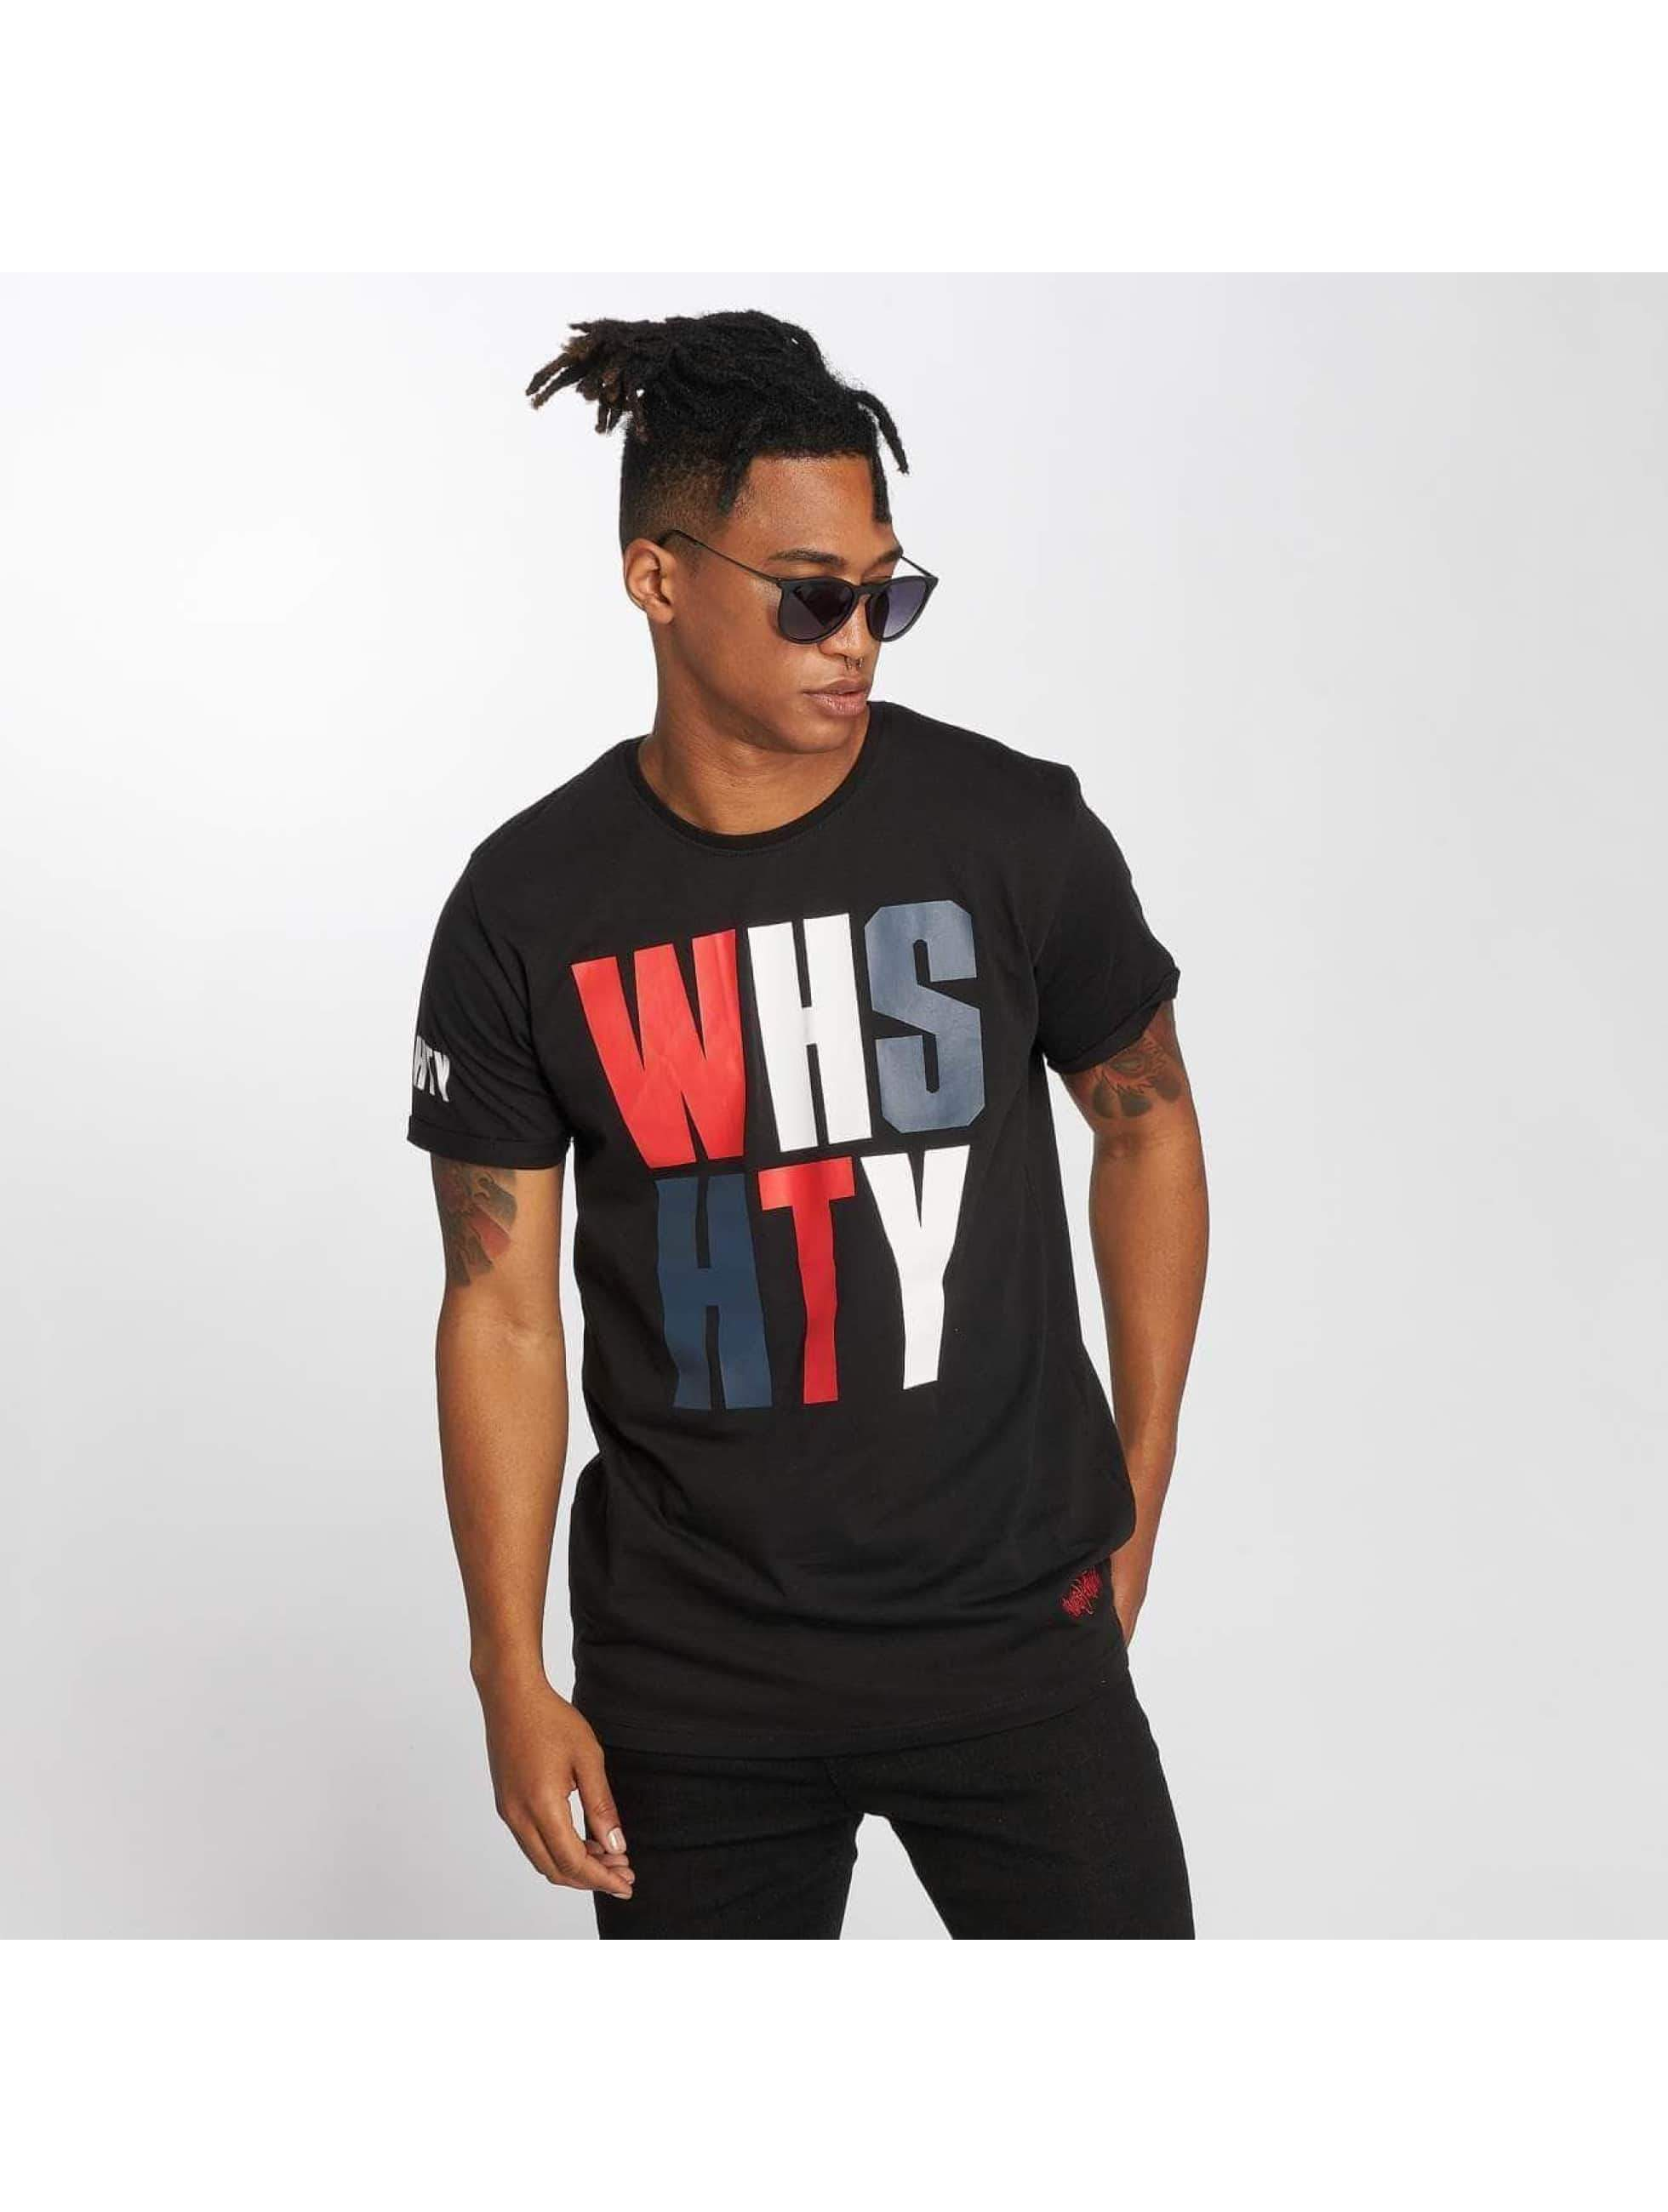 Who Shot Ya? / T-Shirt WHSHTY in black 2XL